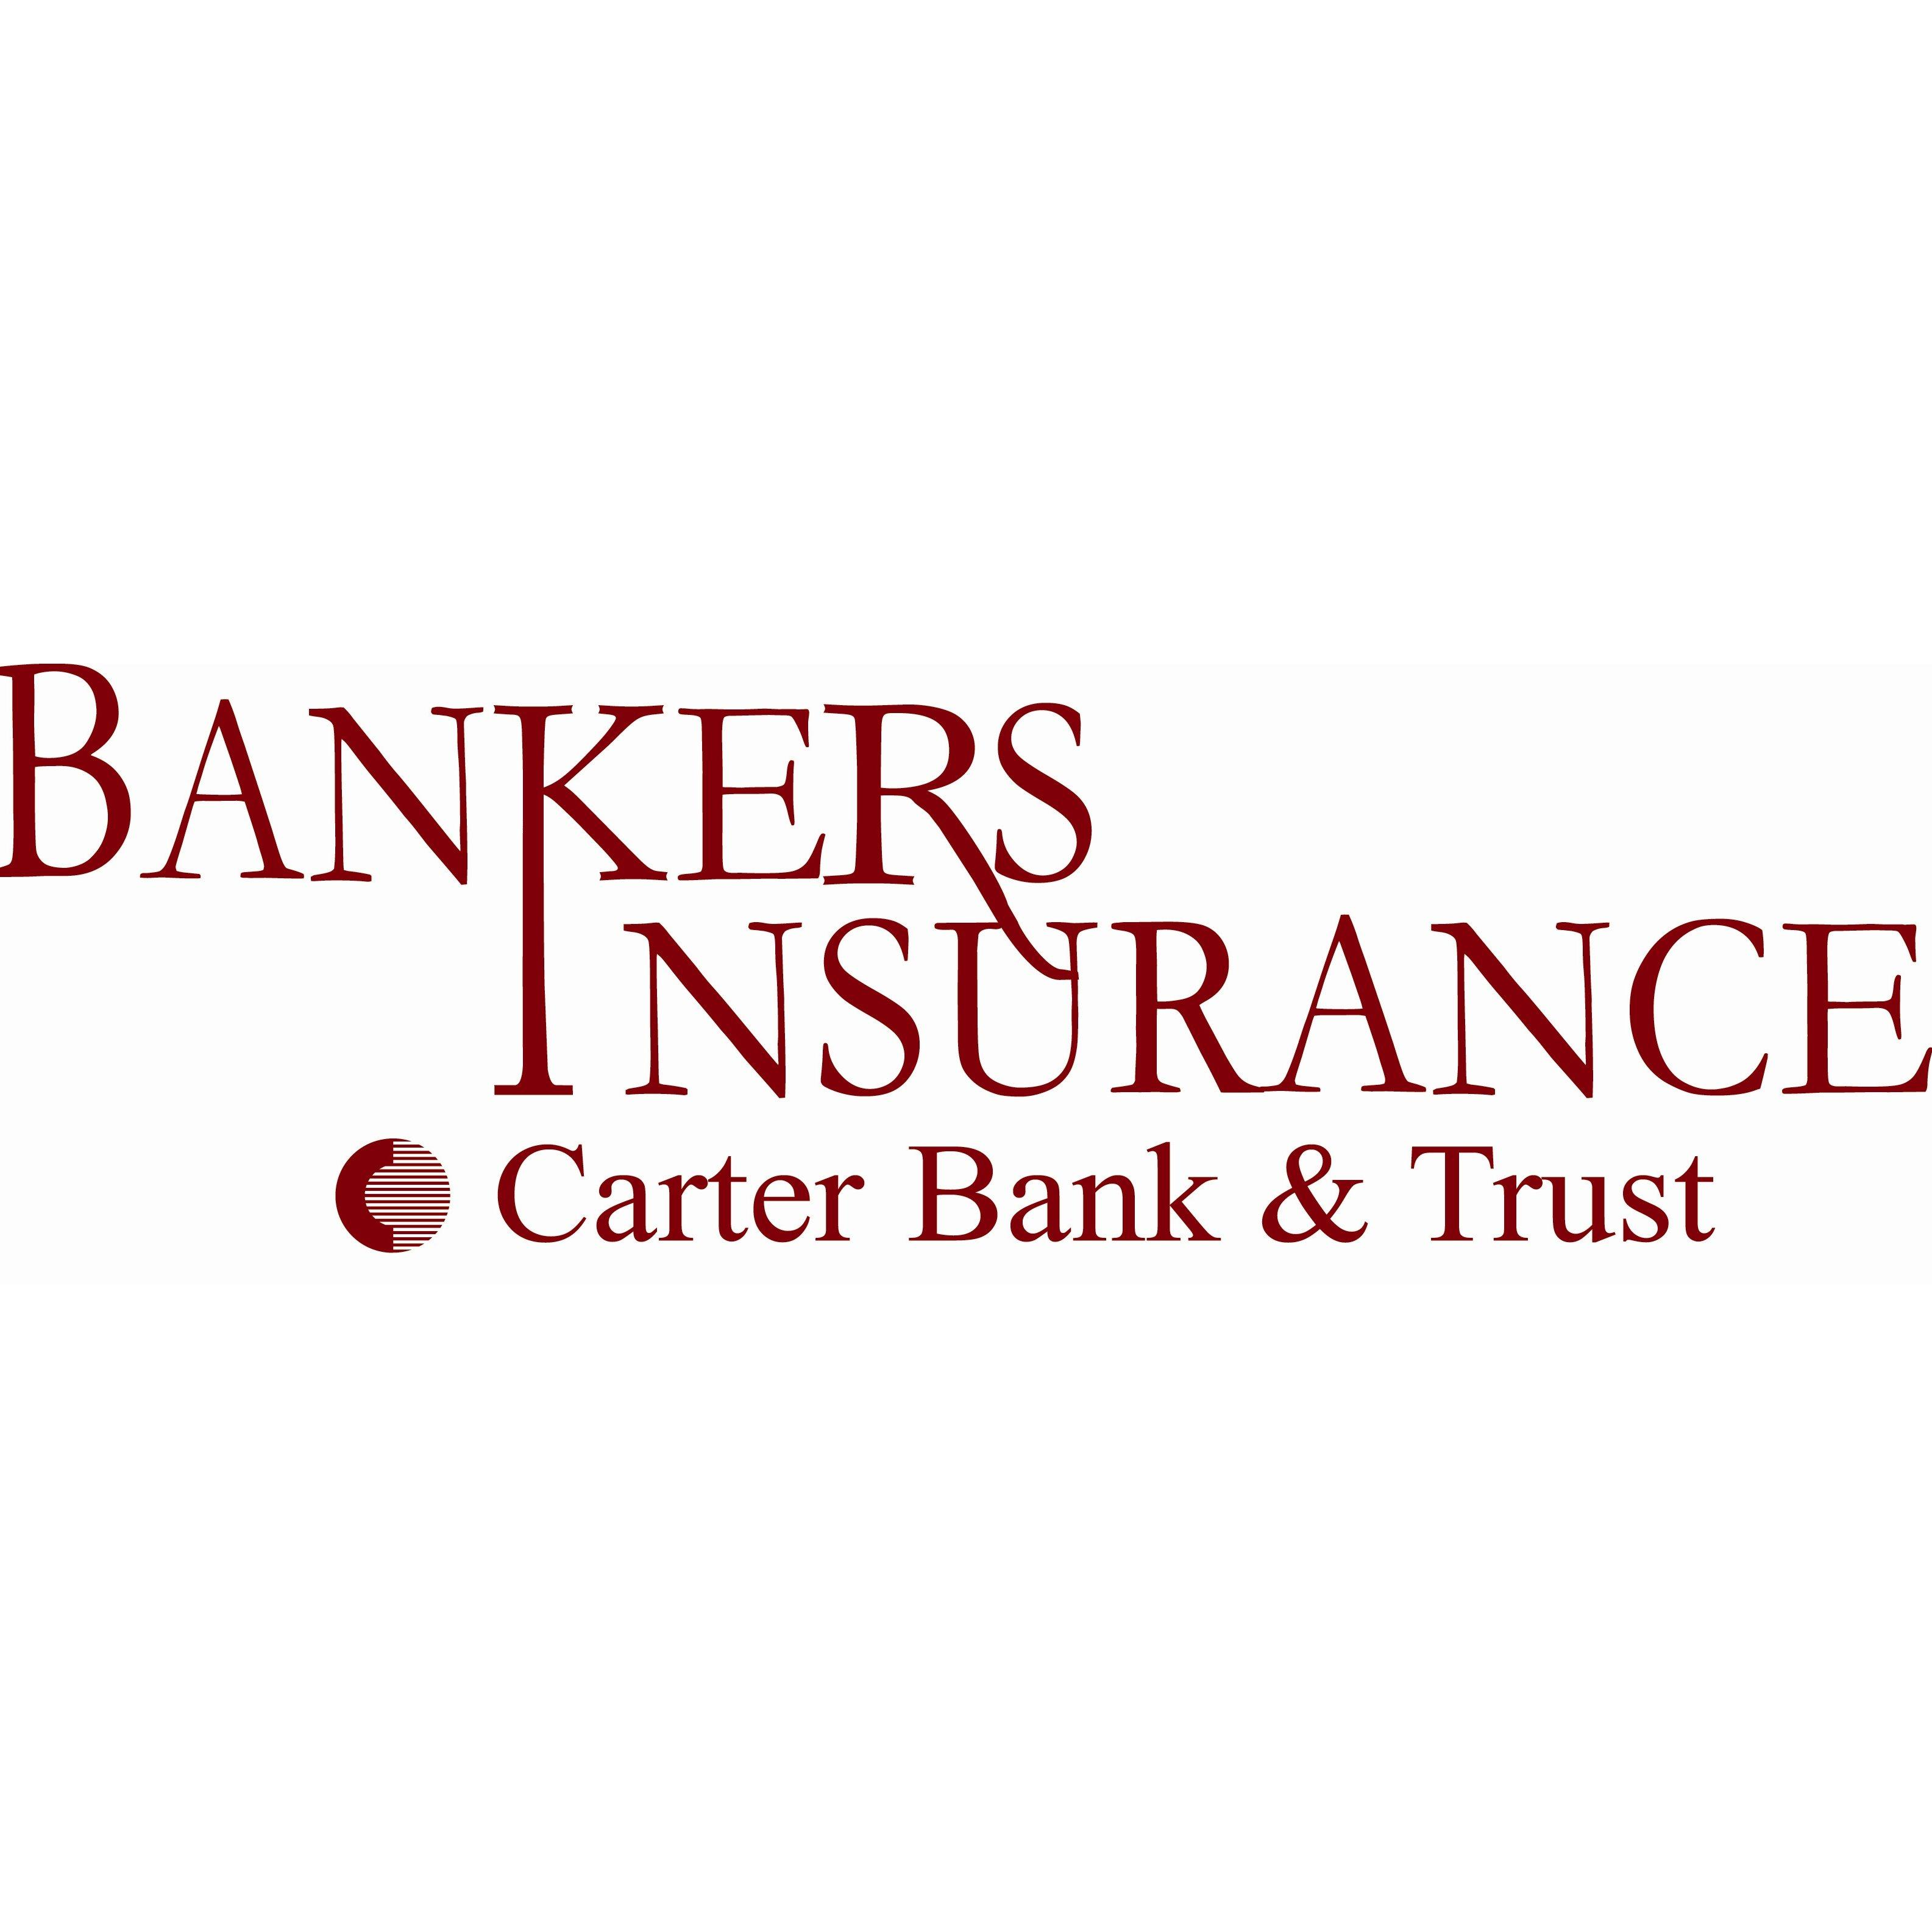 Carter Bank And Trust Stock Quote